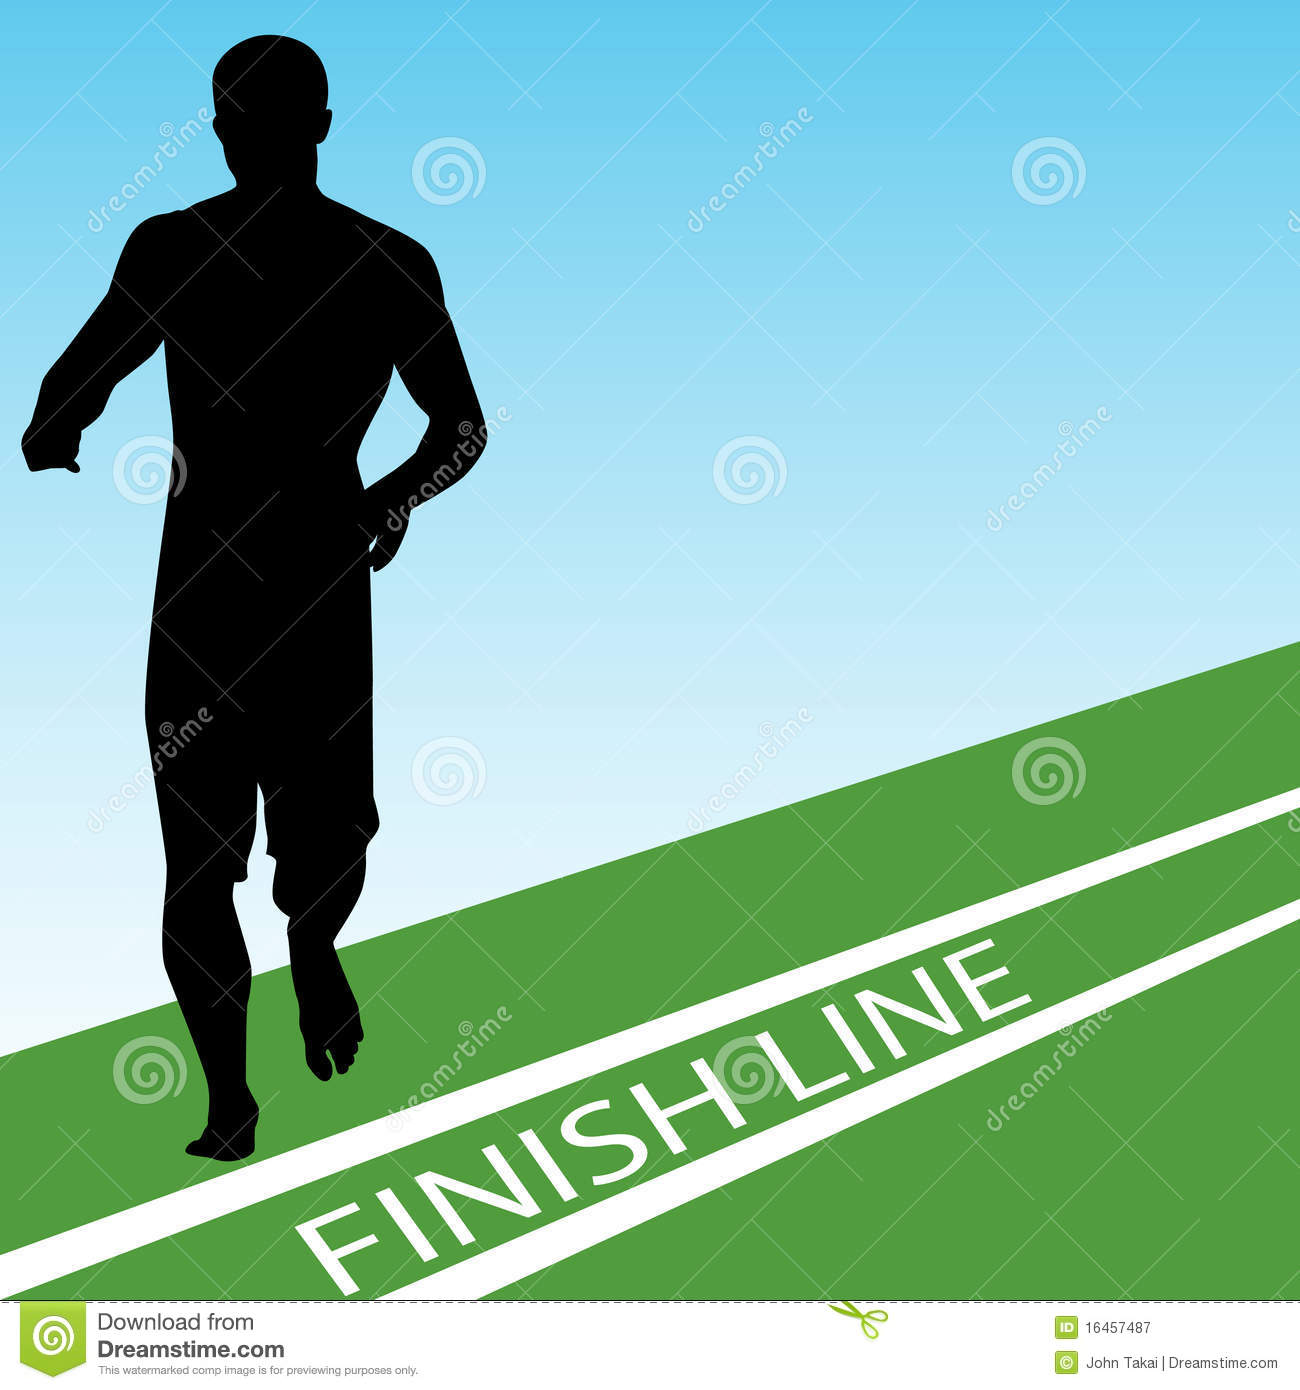 finish line royalty free stock photography image 16457487 school books clip art animated school books clipart